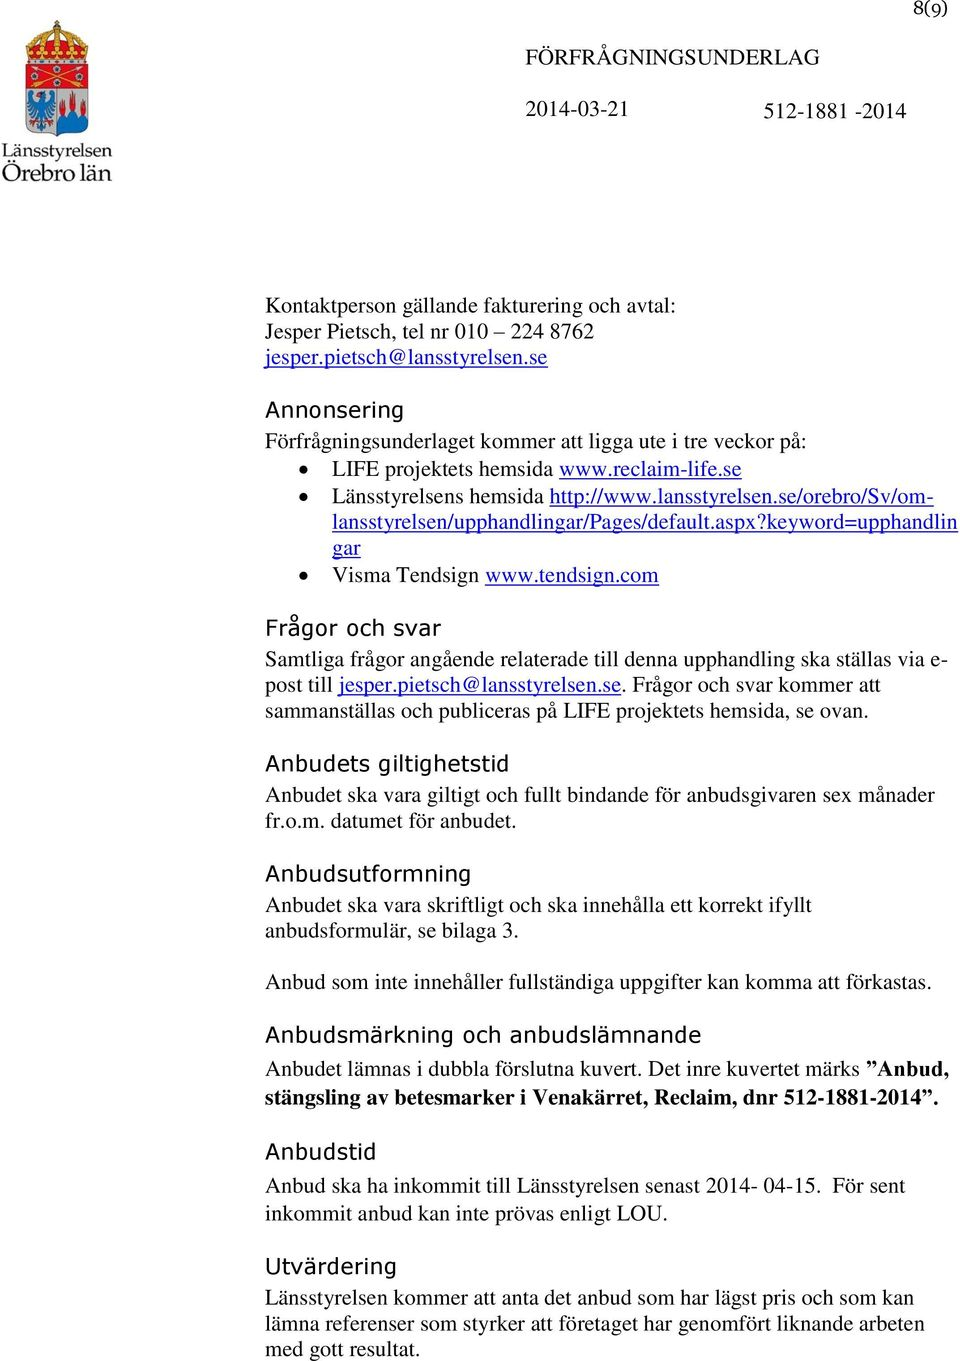 se/orebro/sv/omlansstyrelsen/upphandlingar/pages/default.aspx?keyword=upphandlin gar Visma Tendsign www.tendsign.